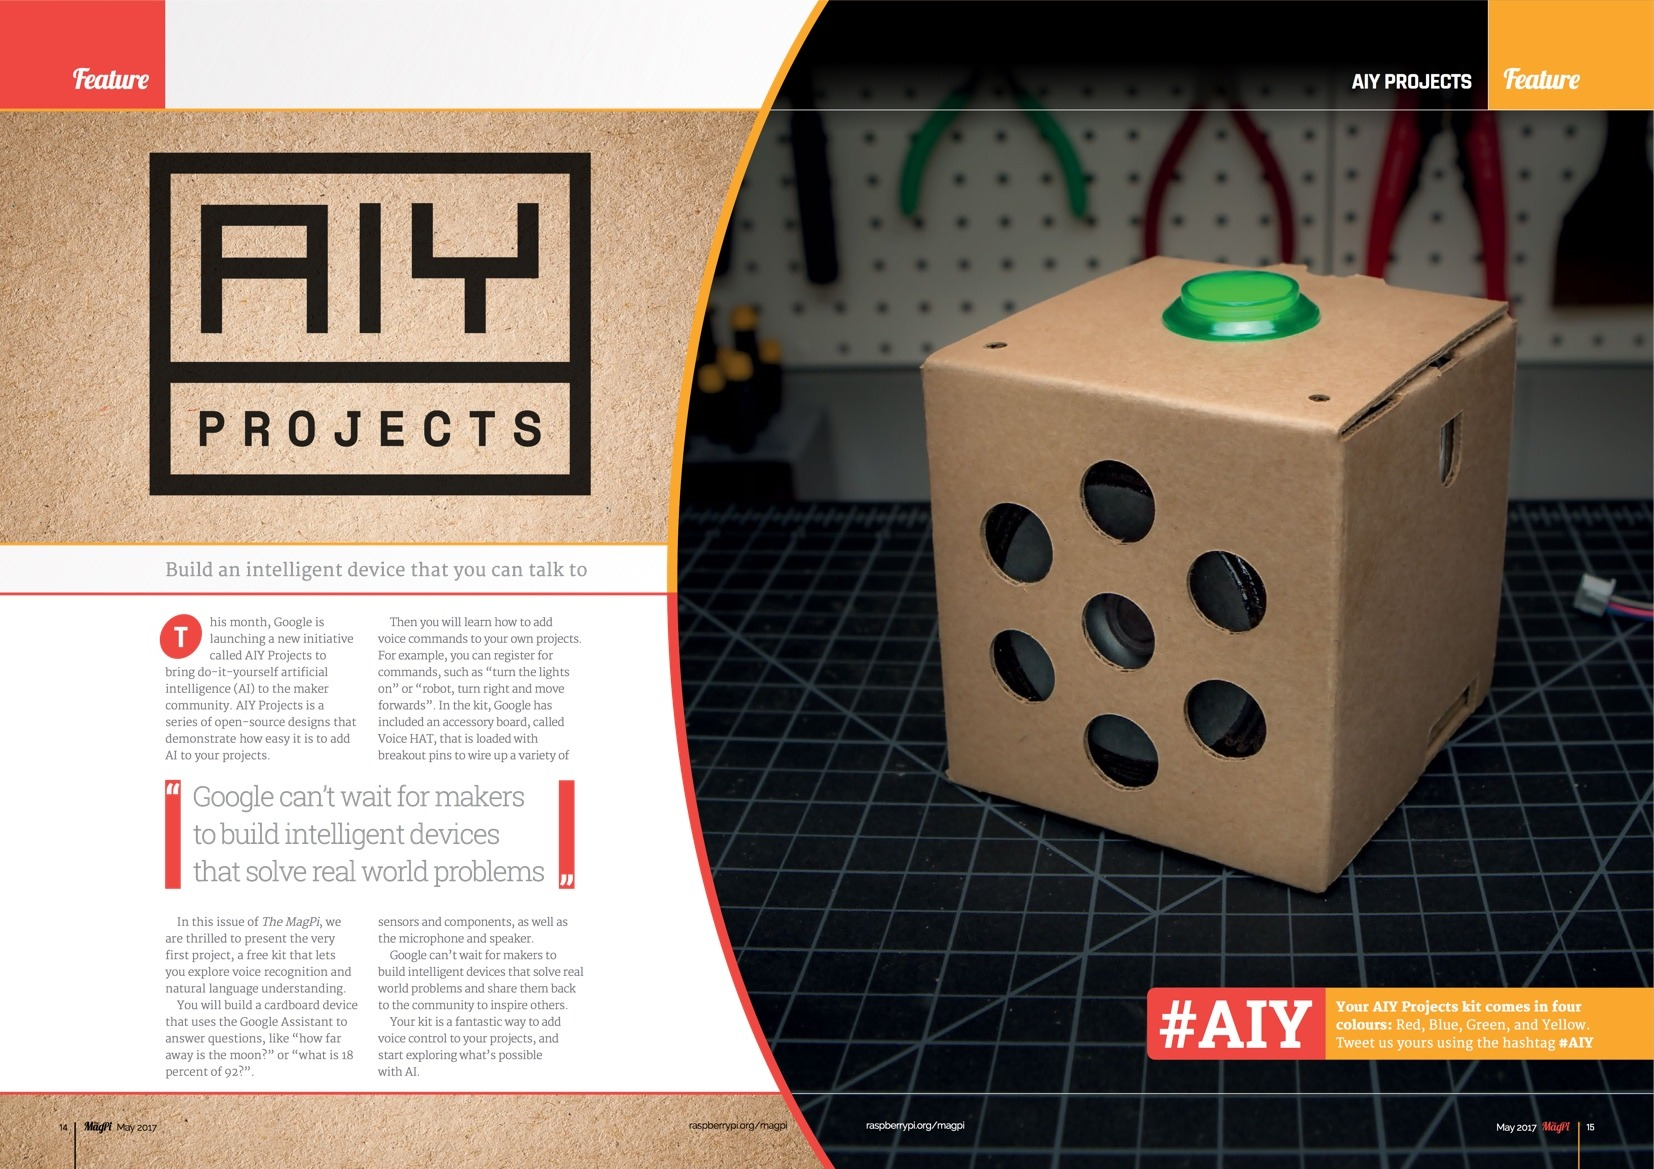 57-AIY-Projects-feature